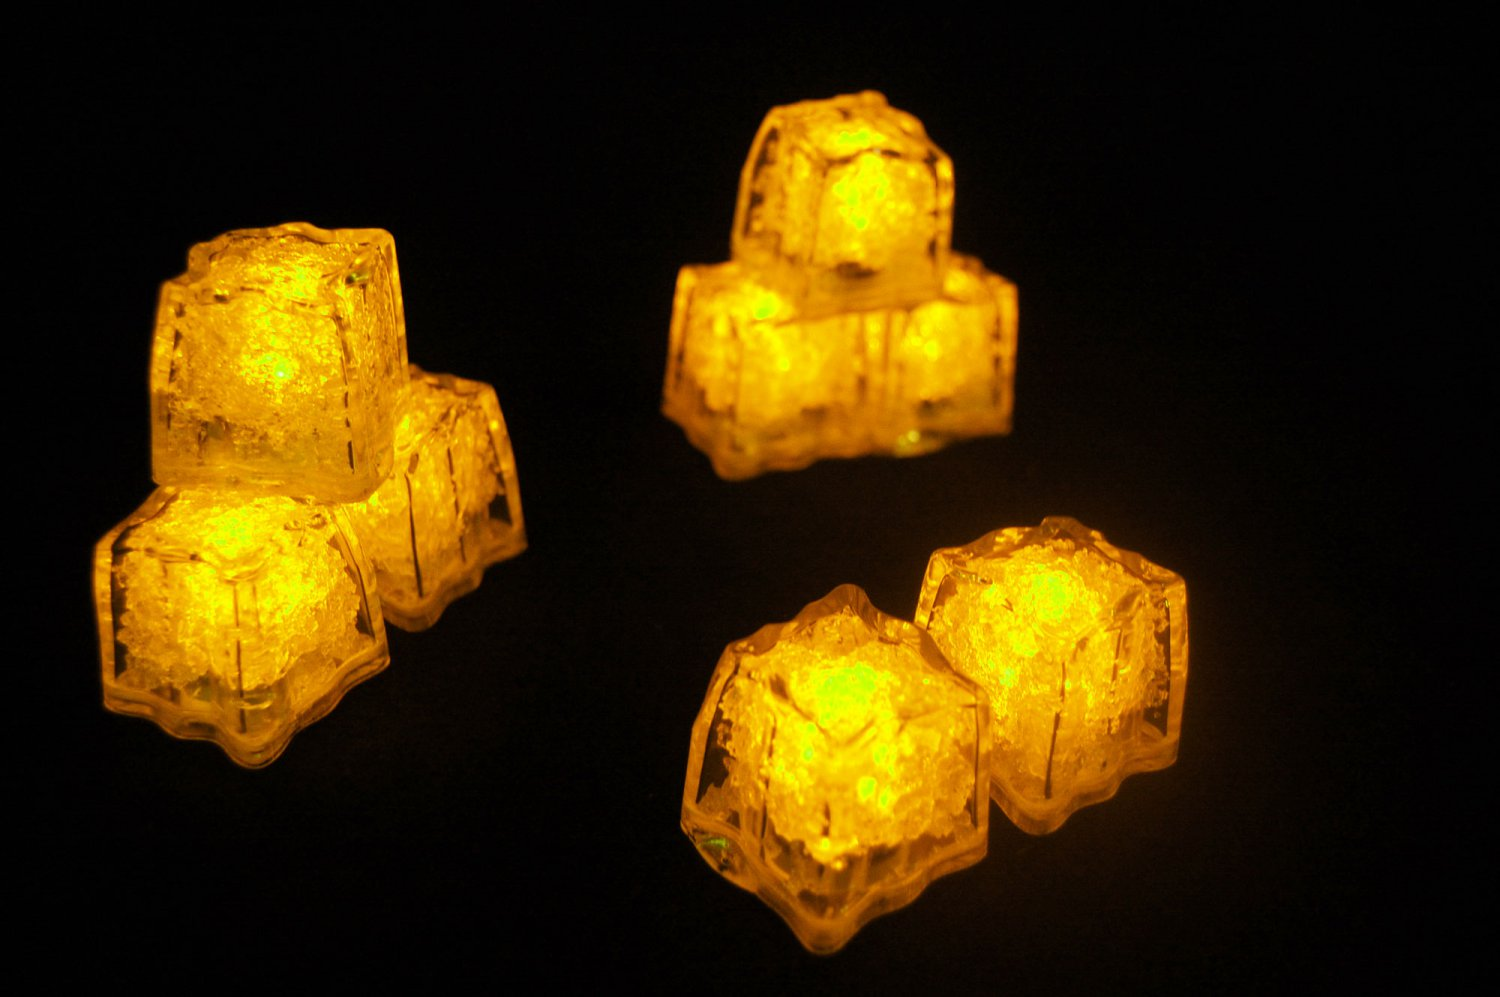 Set of 8 Litecubes  Brand Jewel Color Tinted Topaz Yellow Light up LED Ice Cubes